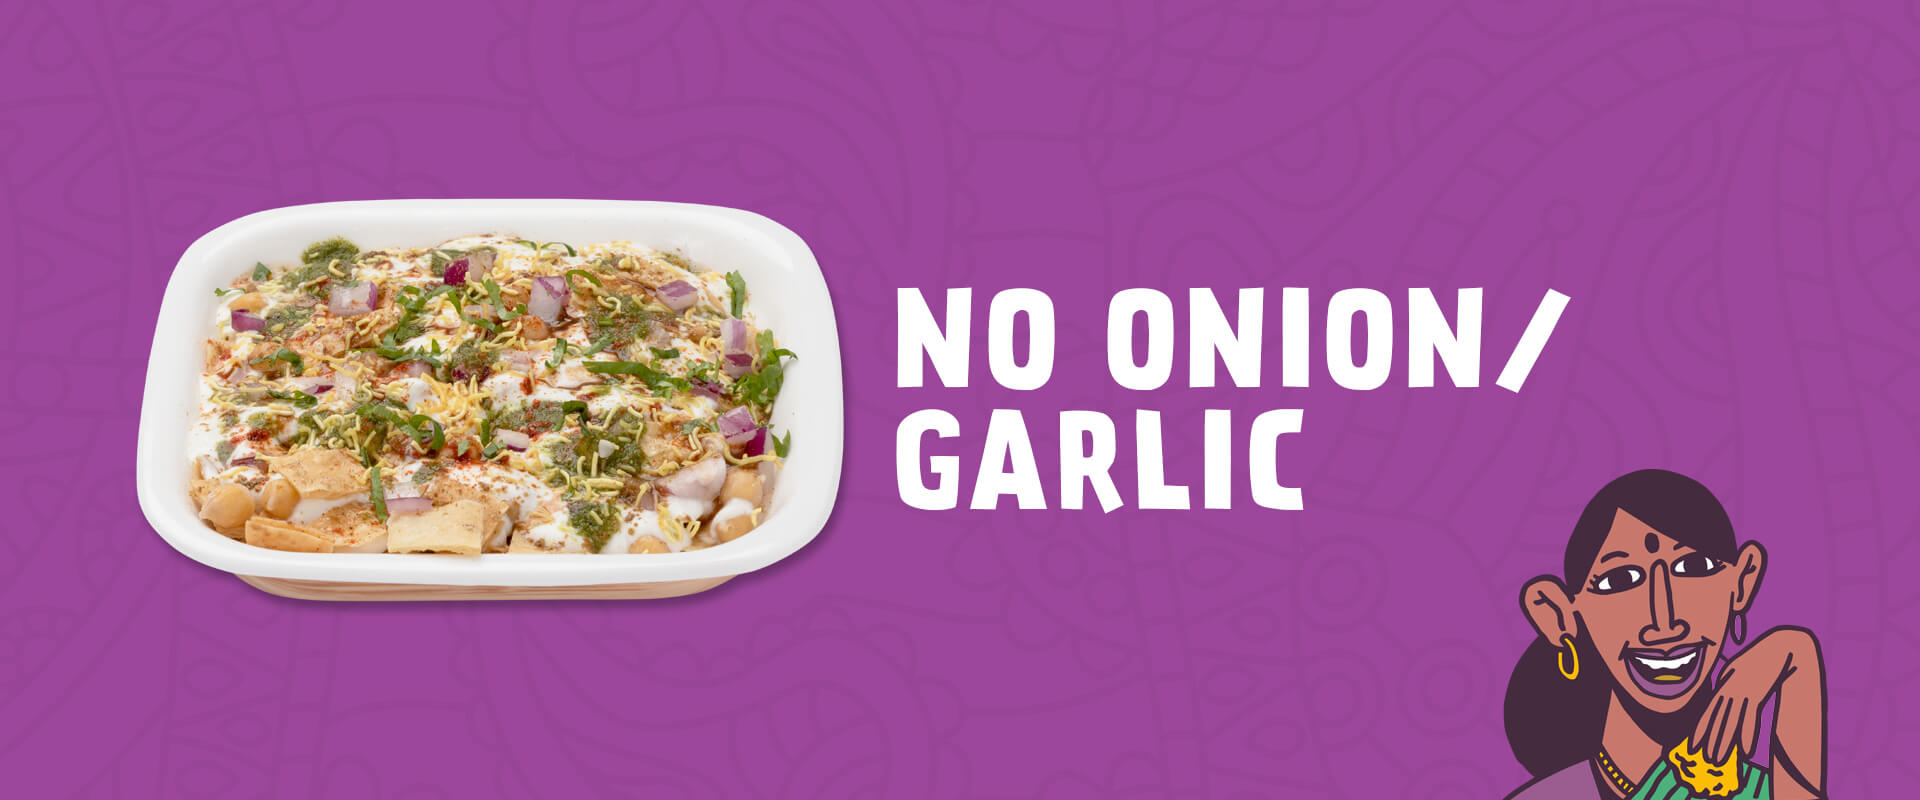 Food dishes with no garlic and onion